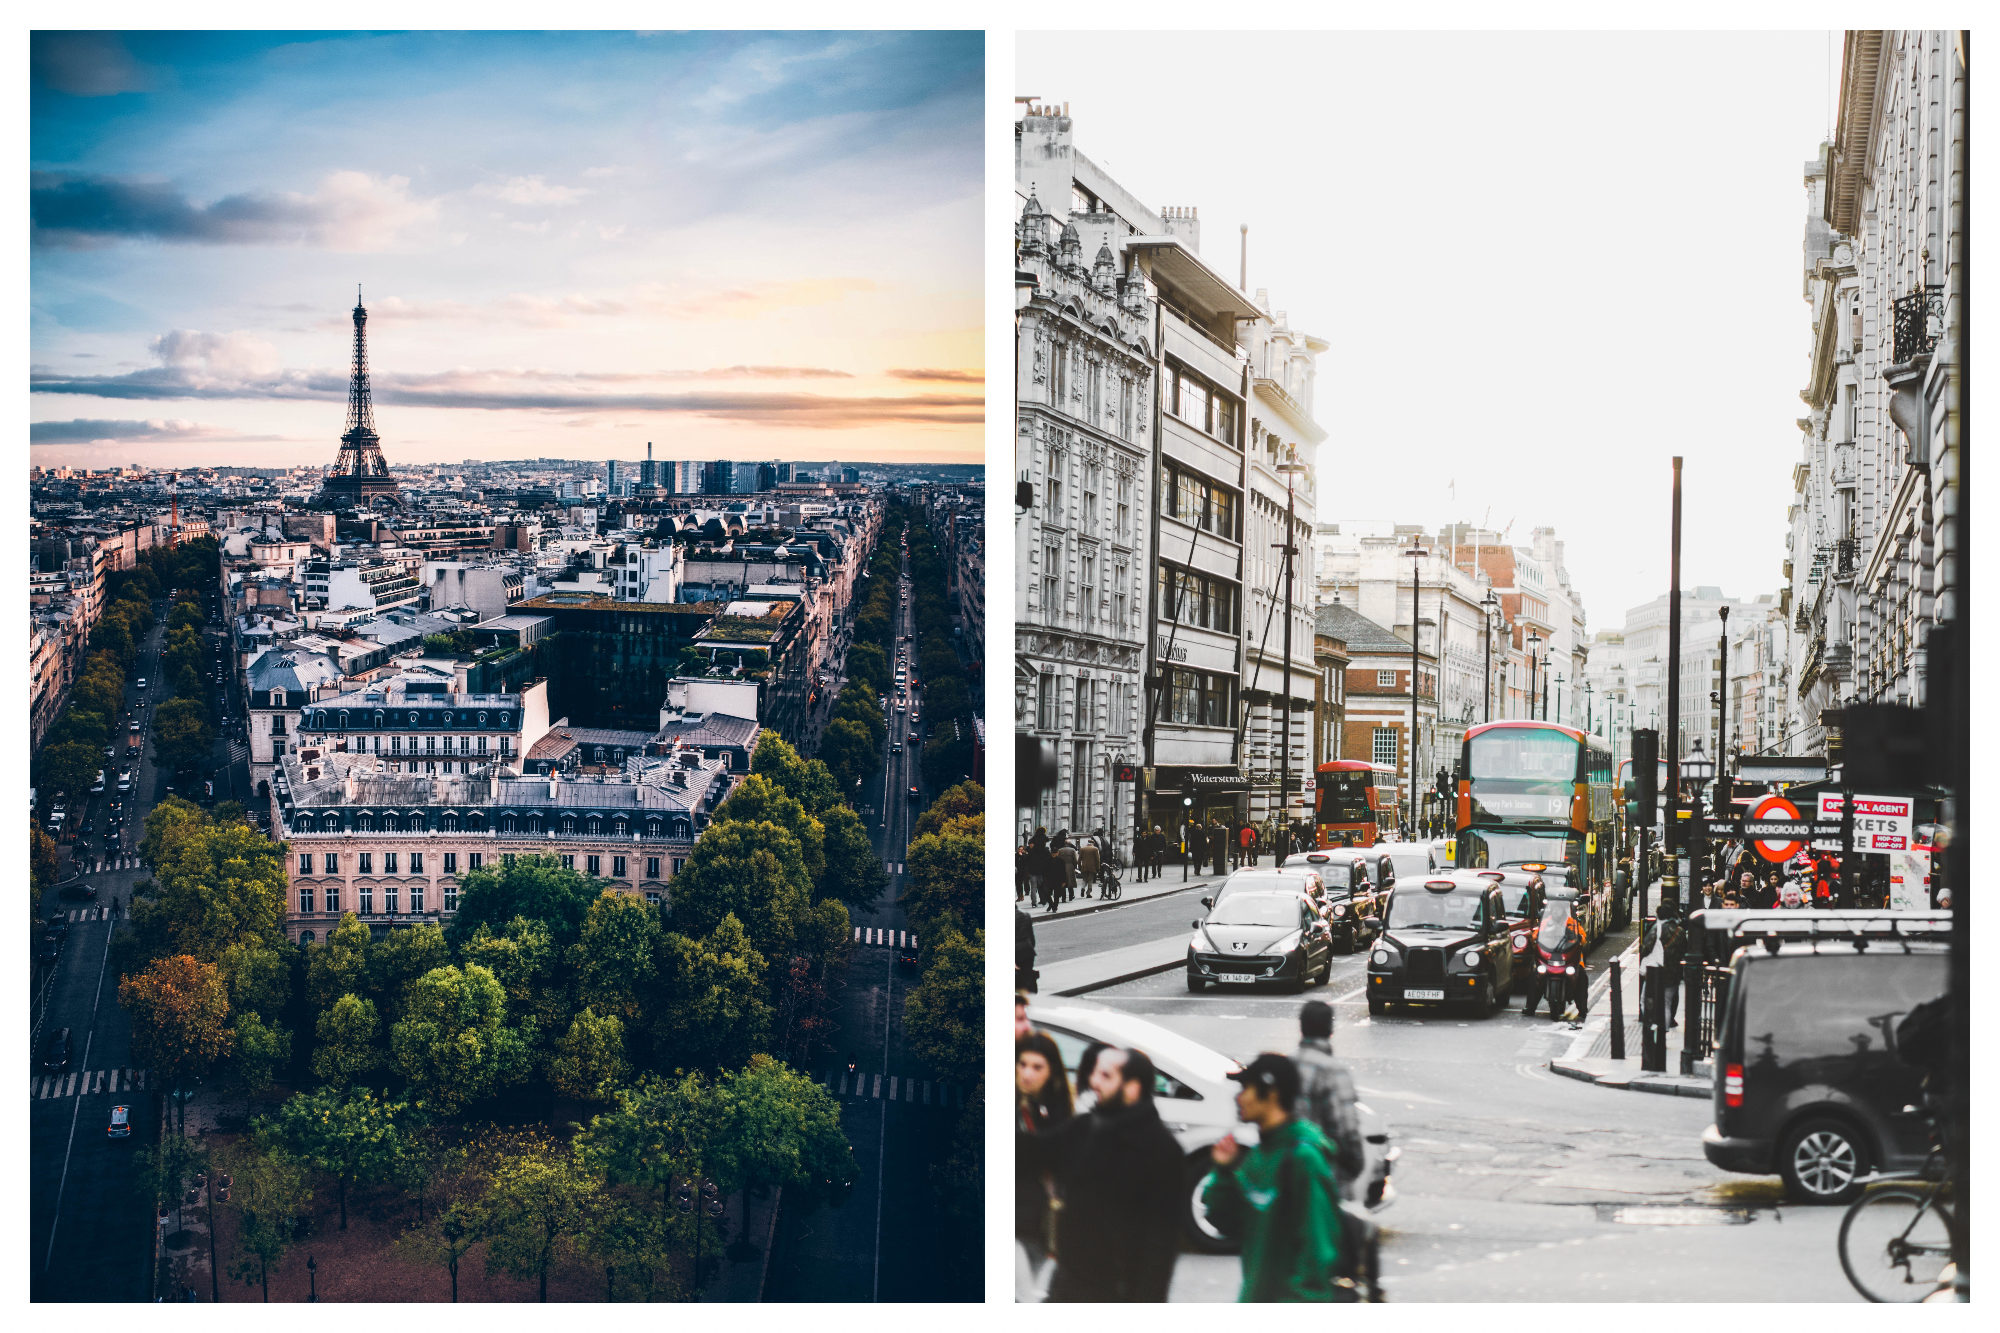 The Eiffel Tower on the Paris skyline (left). A busy street in London (right).